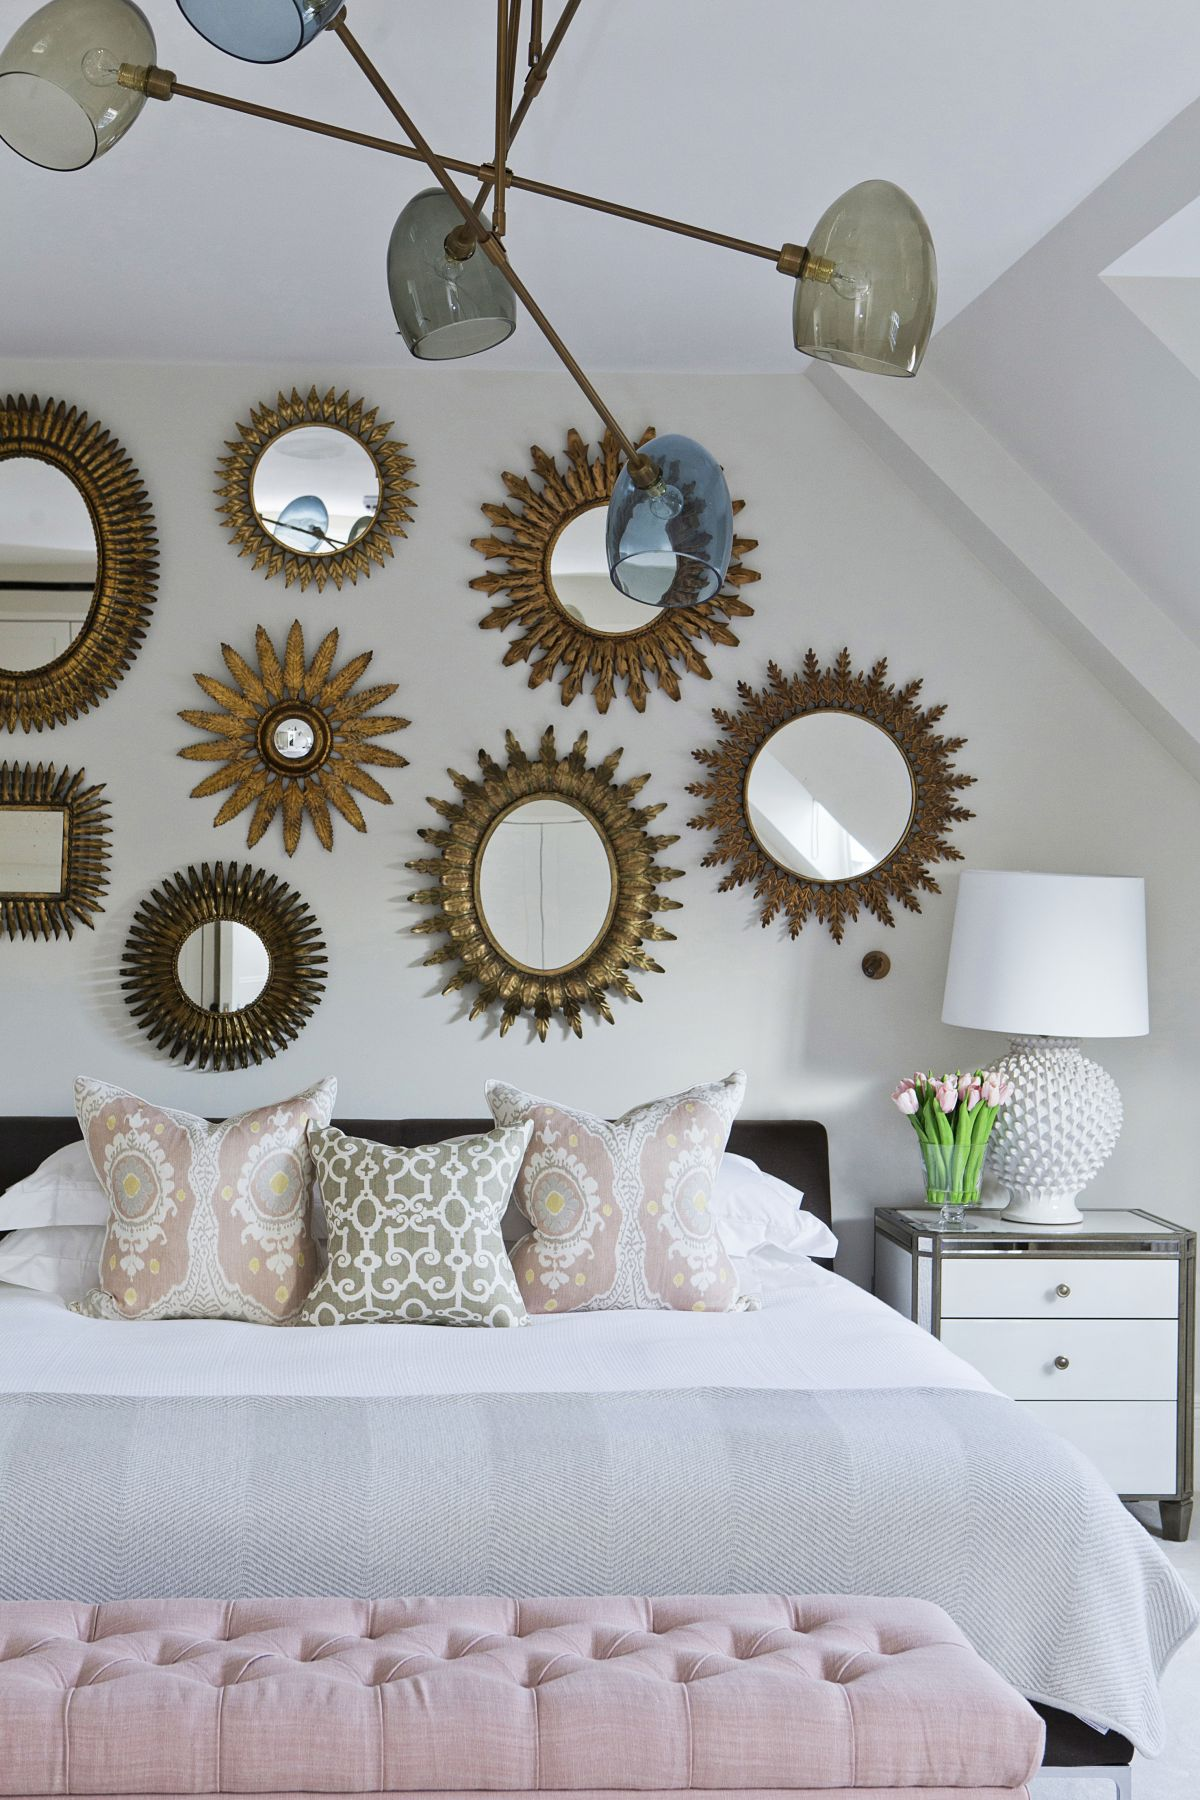 These 13 attic bedroom ideas that prove awkward spaces can be the most beautiful